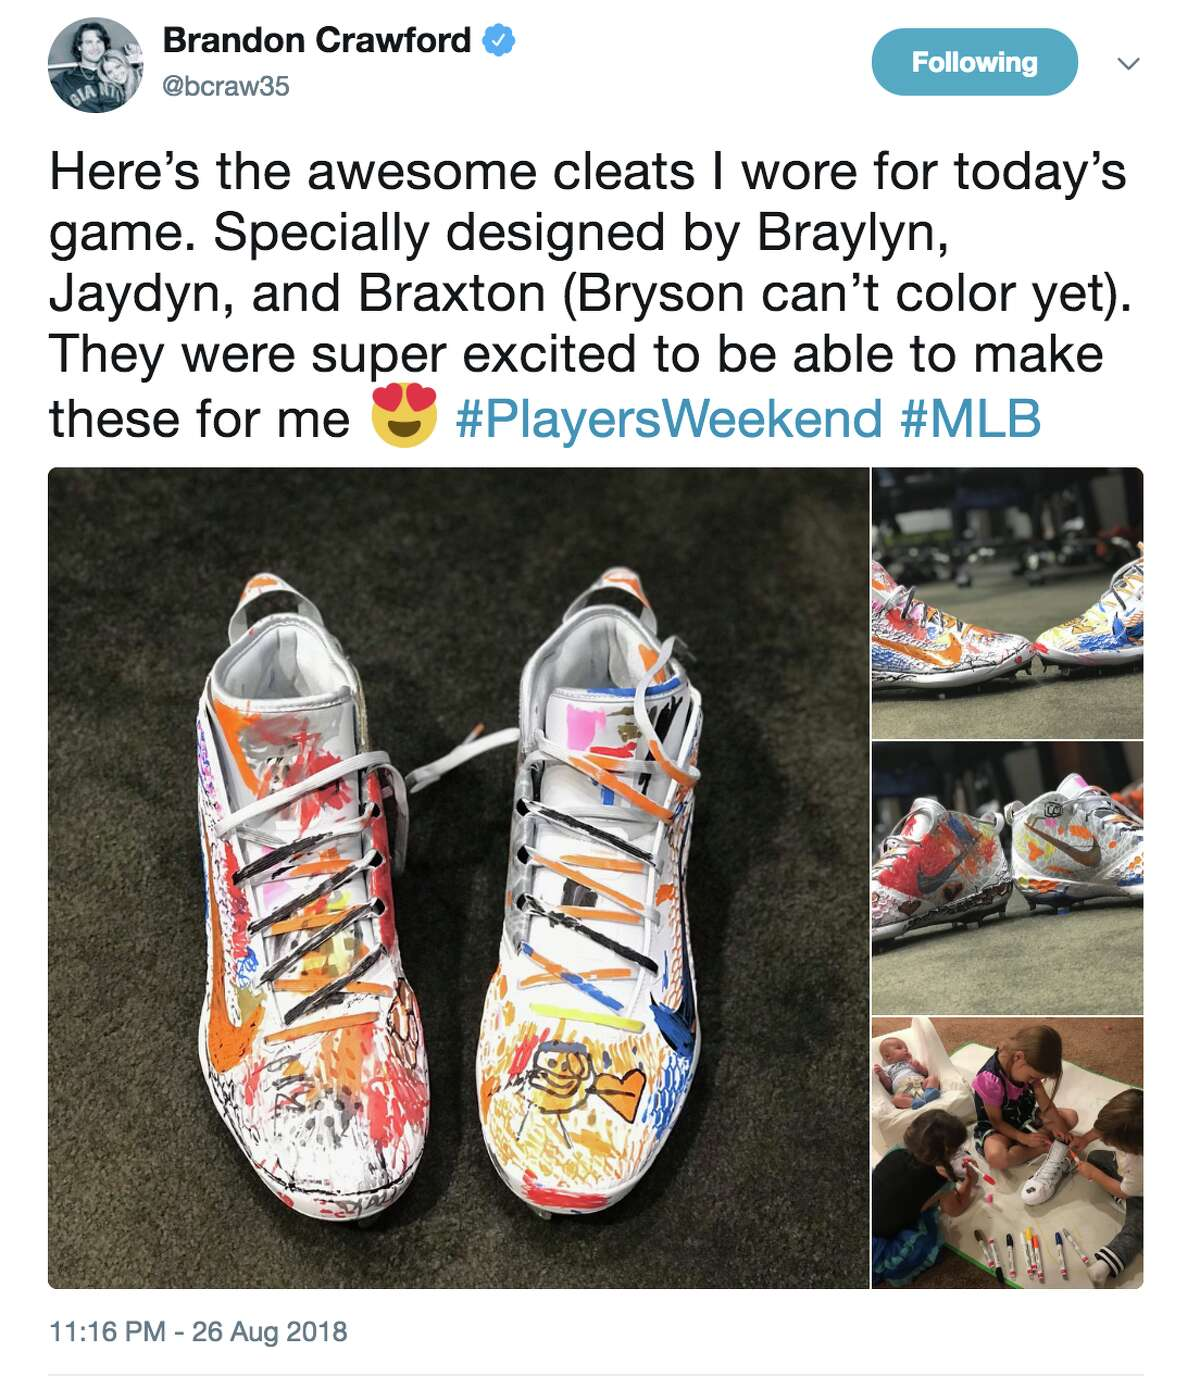 San Francisco Giants shortstop Brandon Crawford shared images on Twitter on Aug. 26, 2018, of the baseball cleats his children decorated with markets.